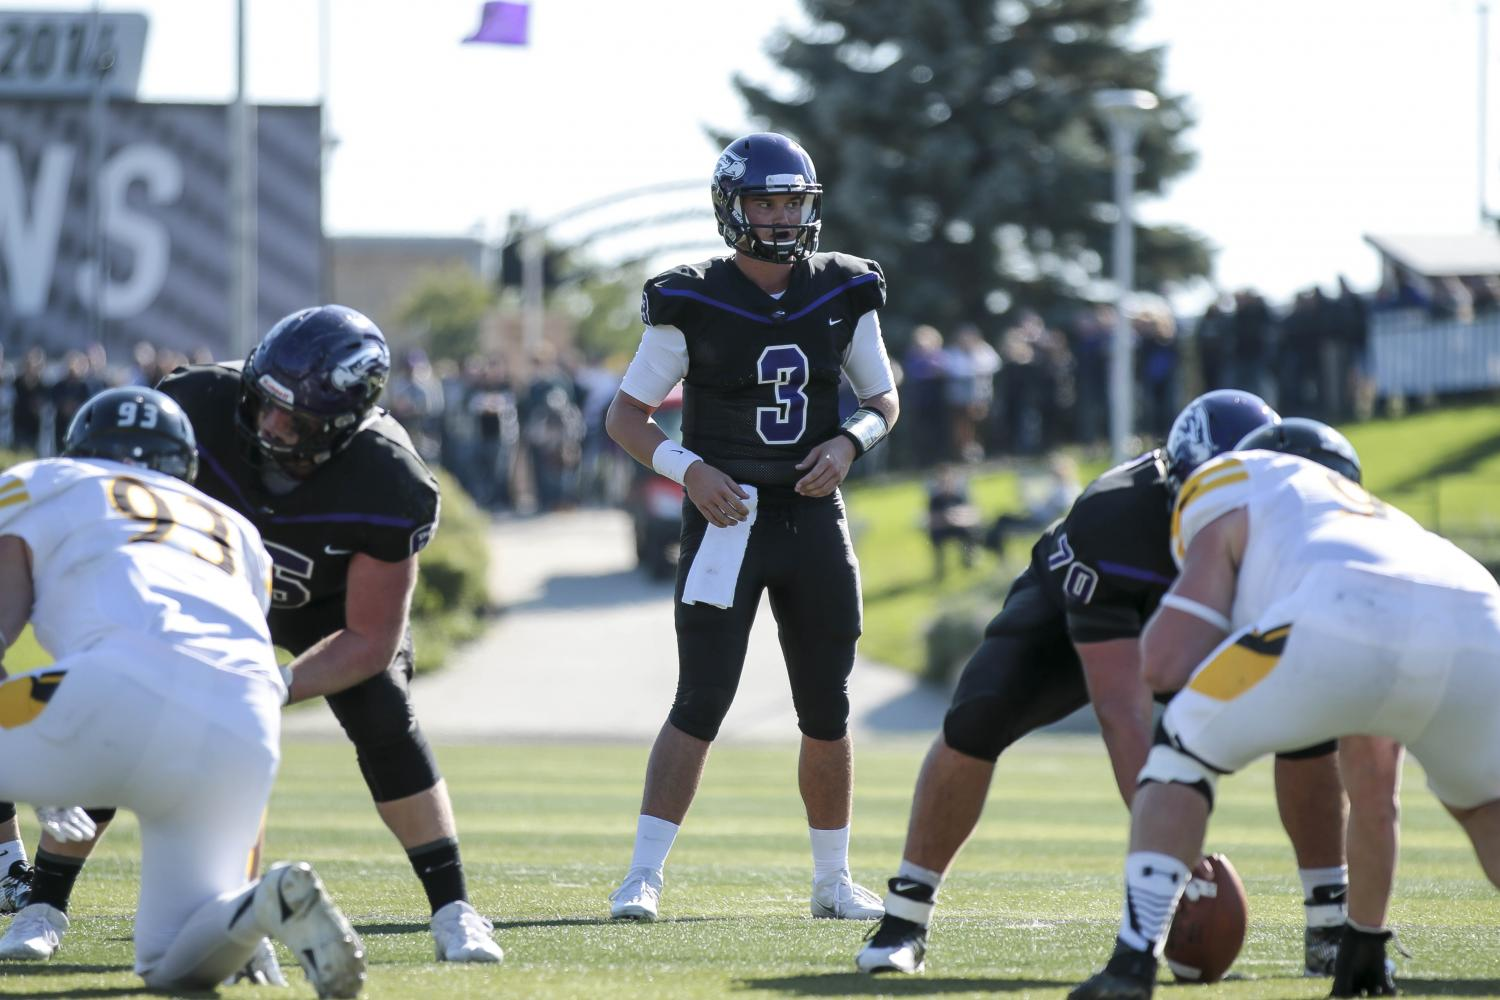 Quarterback Cole Wilber awaits a snap. The quarterback-center exchange was one of the Warhawks biggest issues in the season opener against IWU.